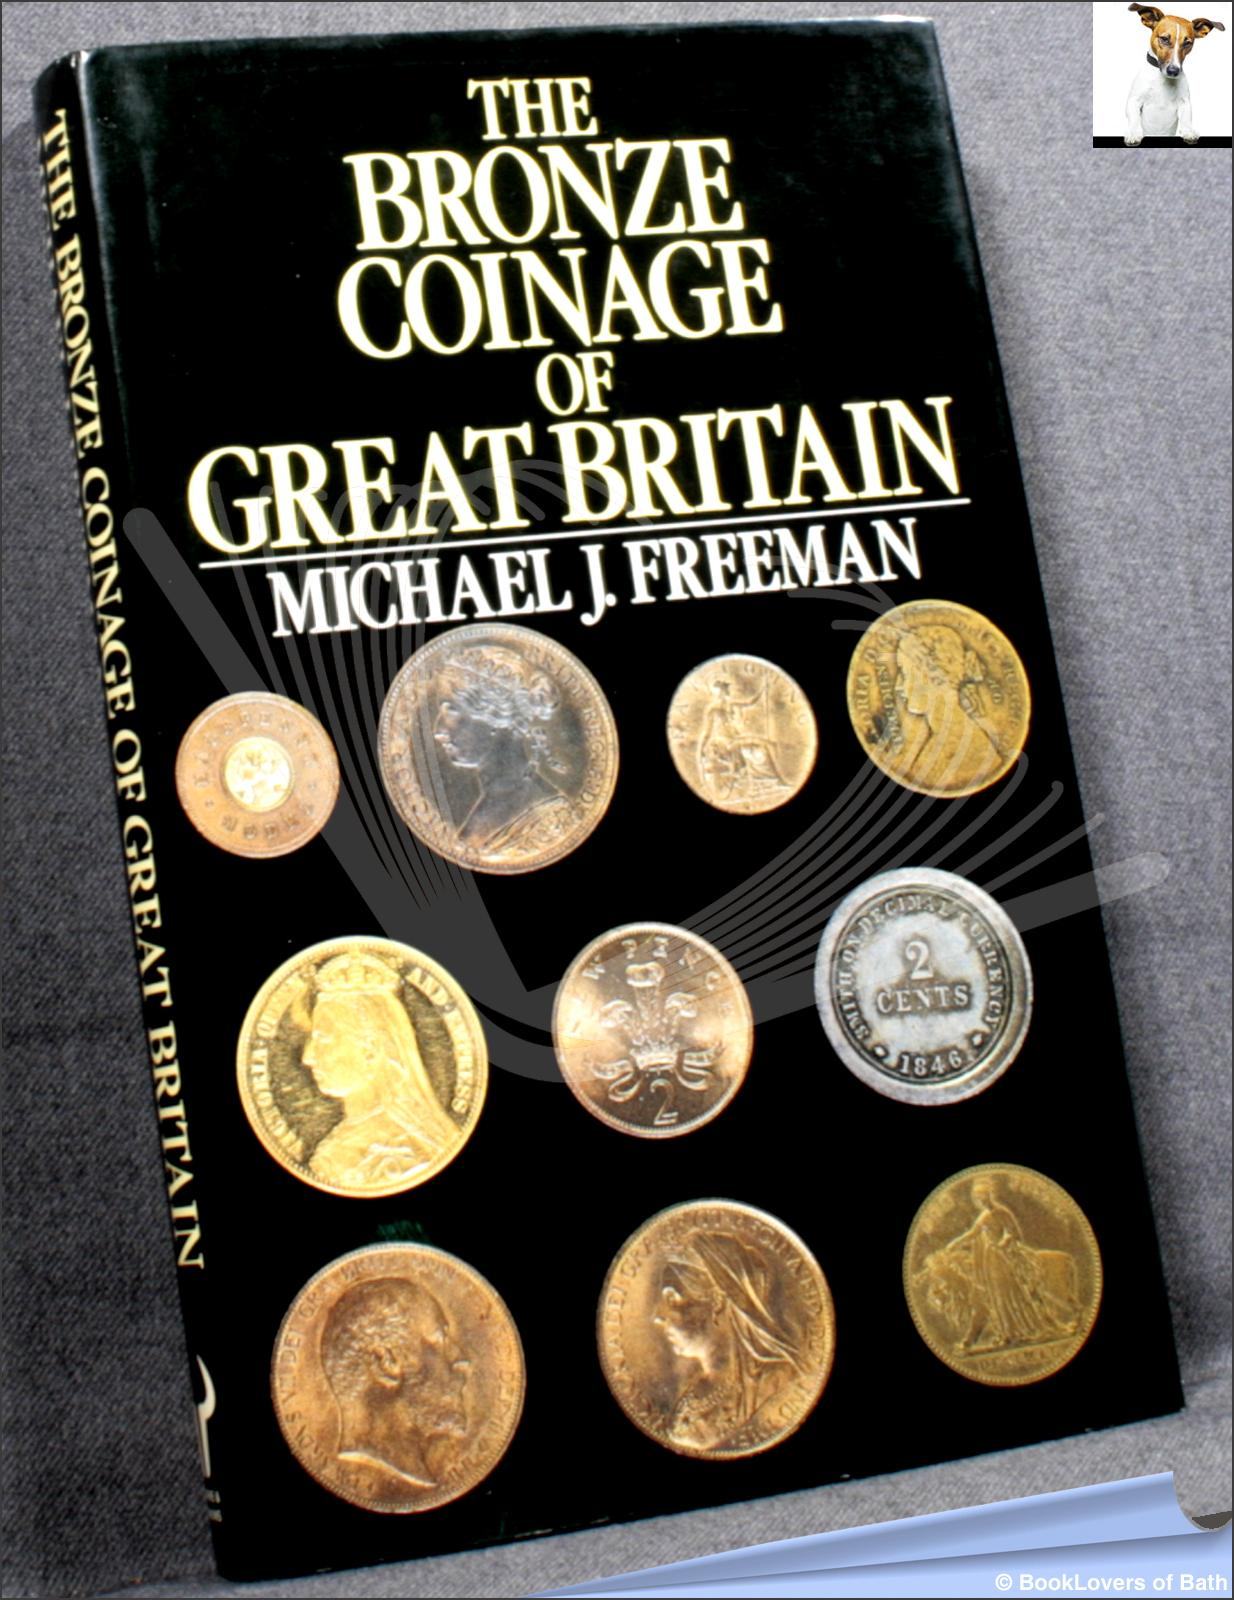 The Bronze Coinage of Great Britain - Michael J. Freeman